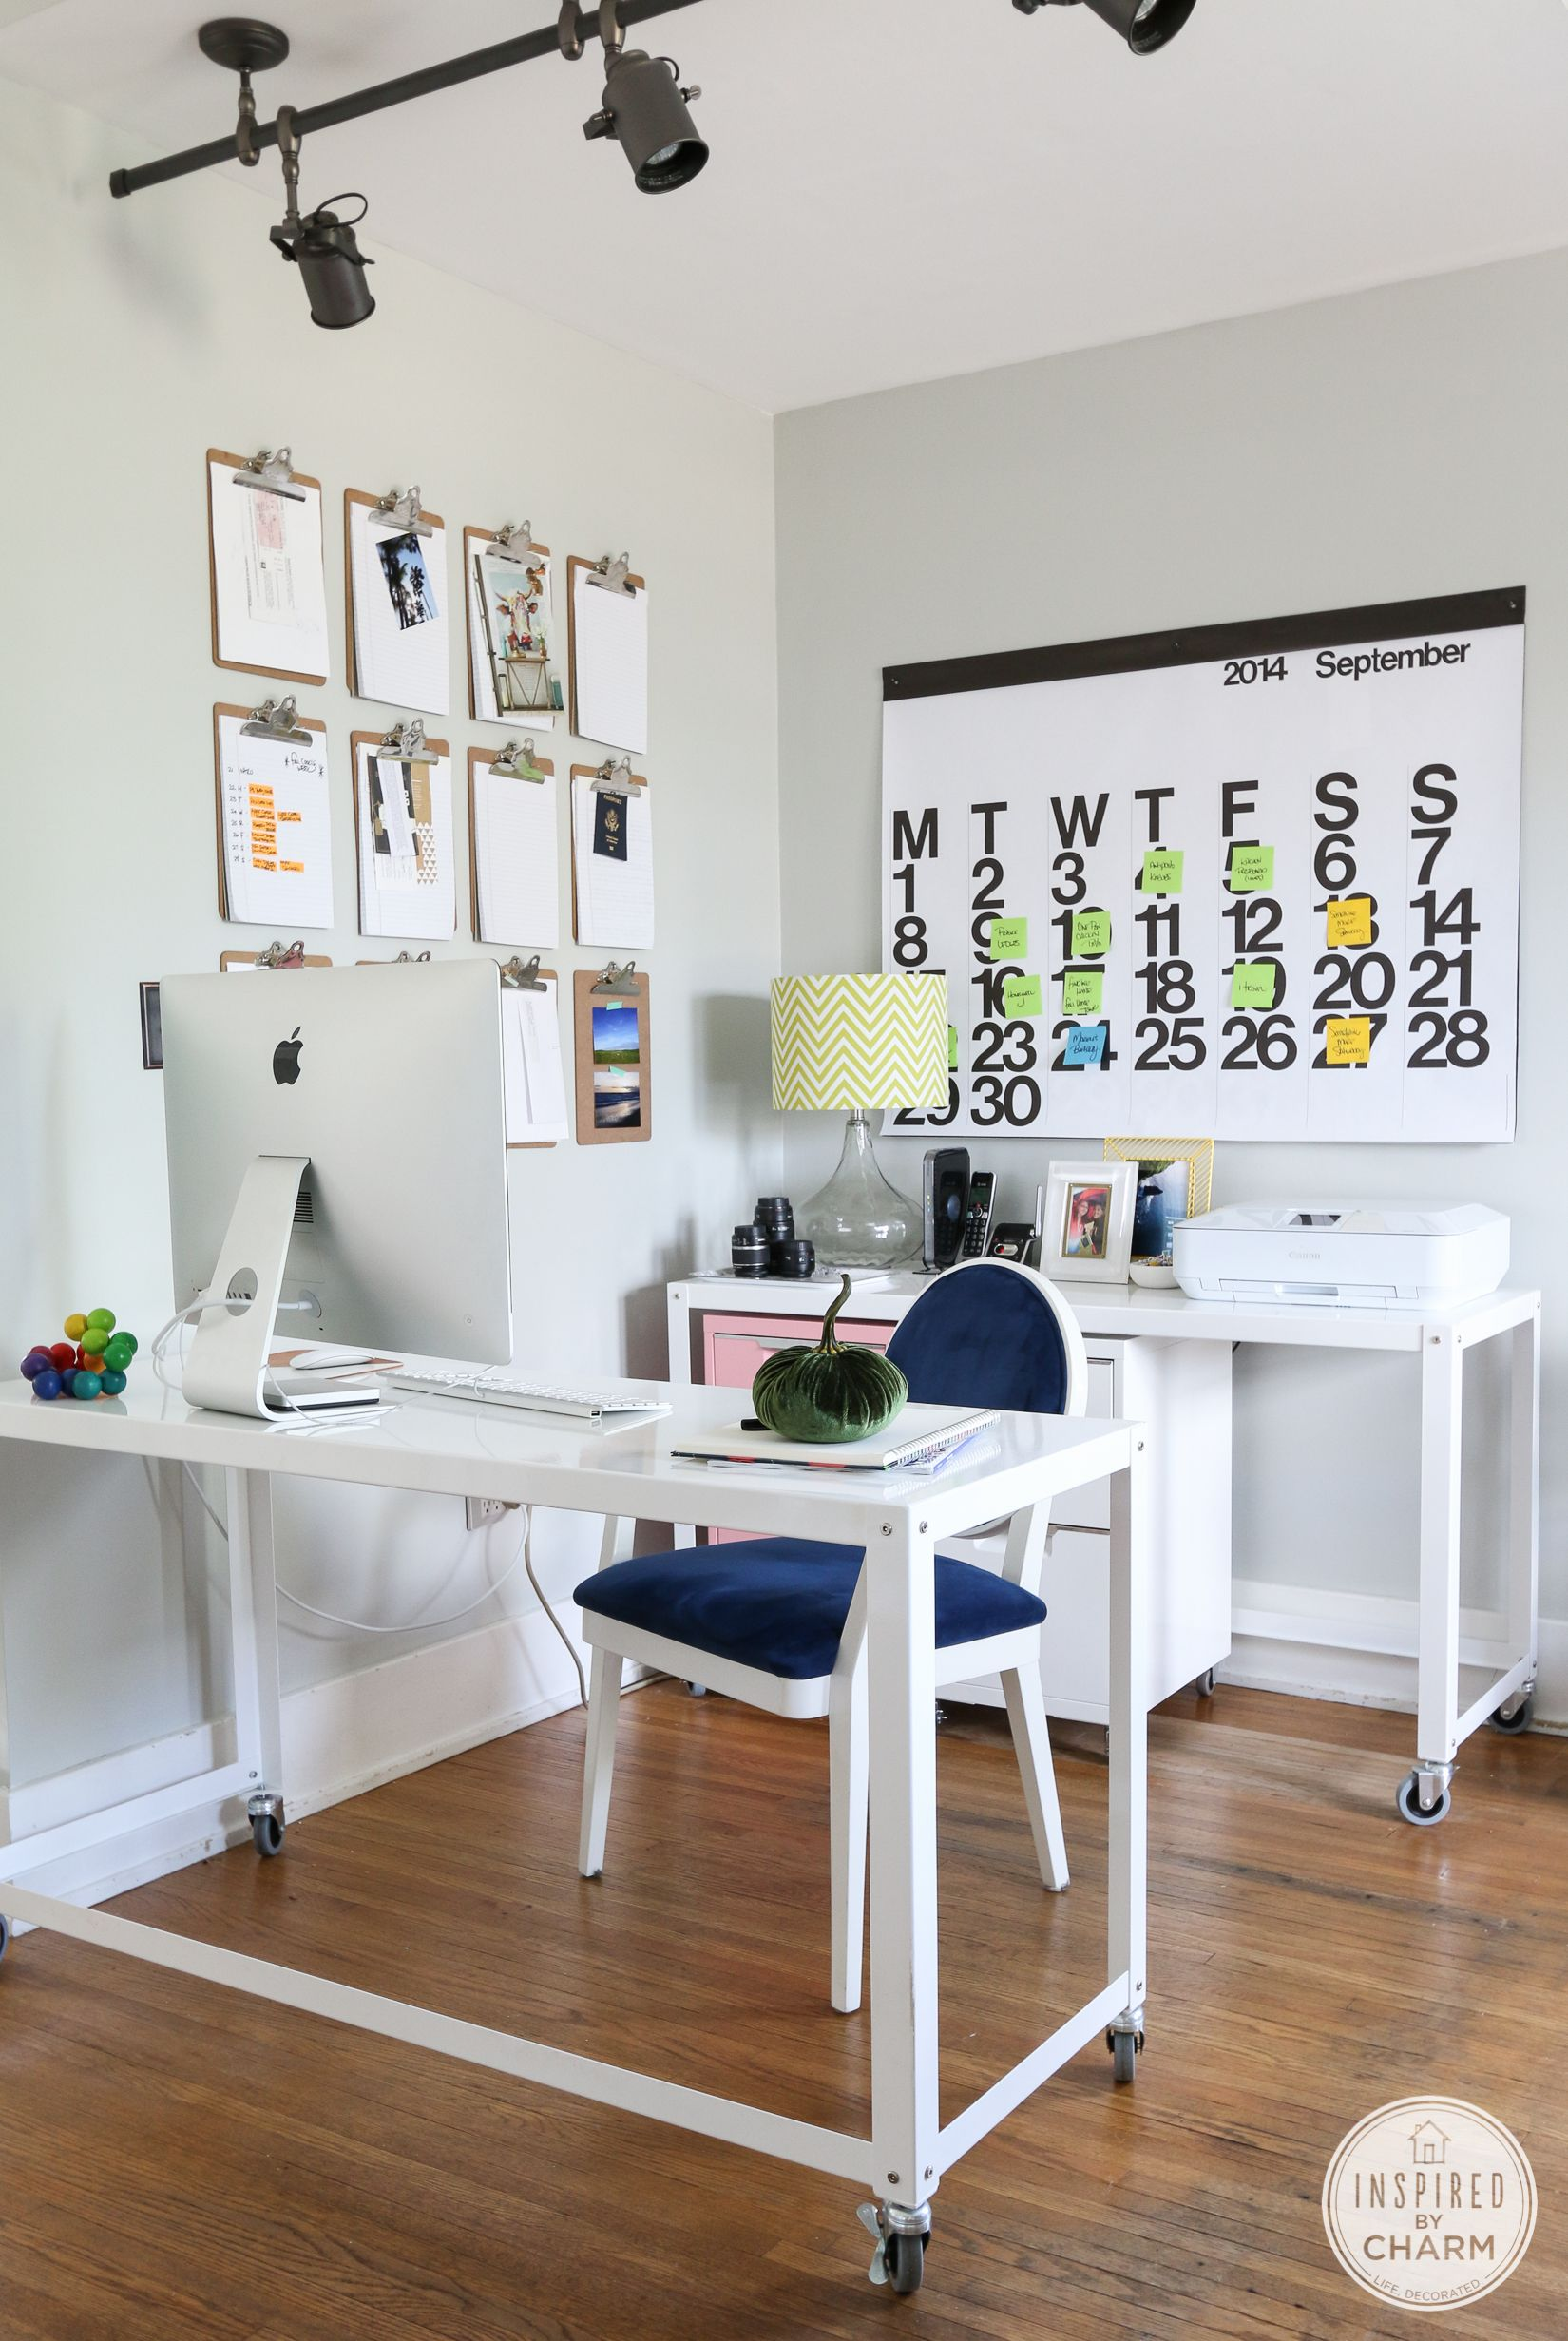 Home Office Space   Office Warehouse   Pinterest   Office spaces ...